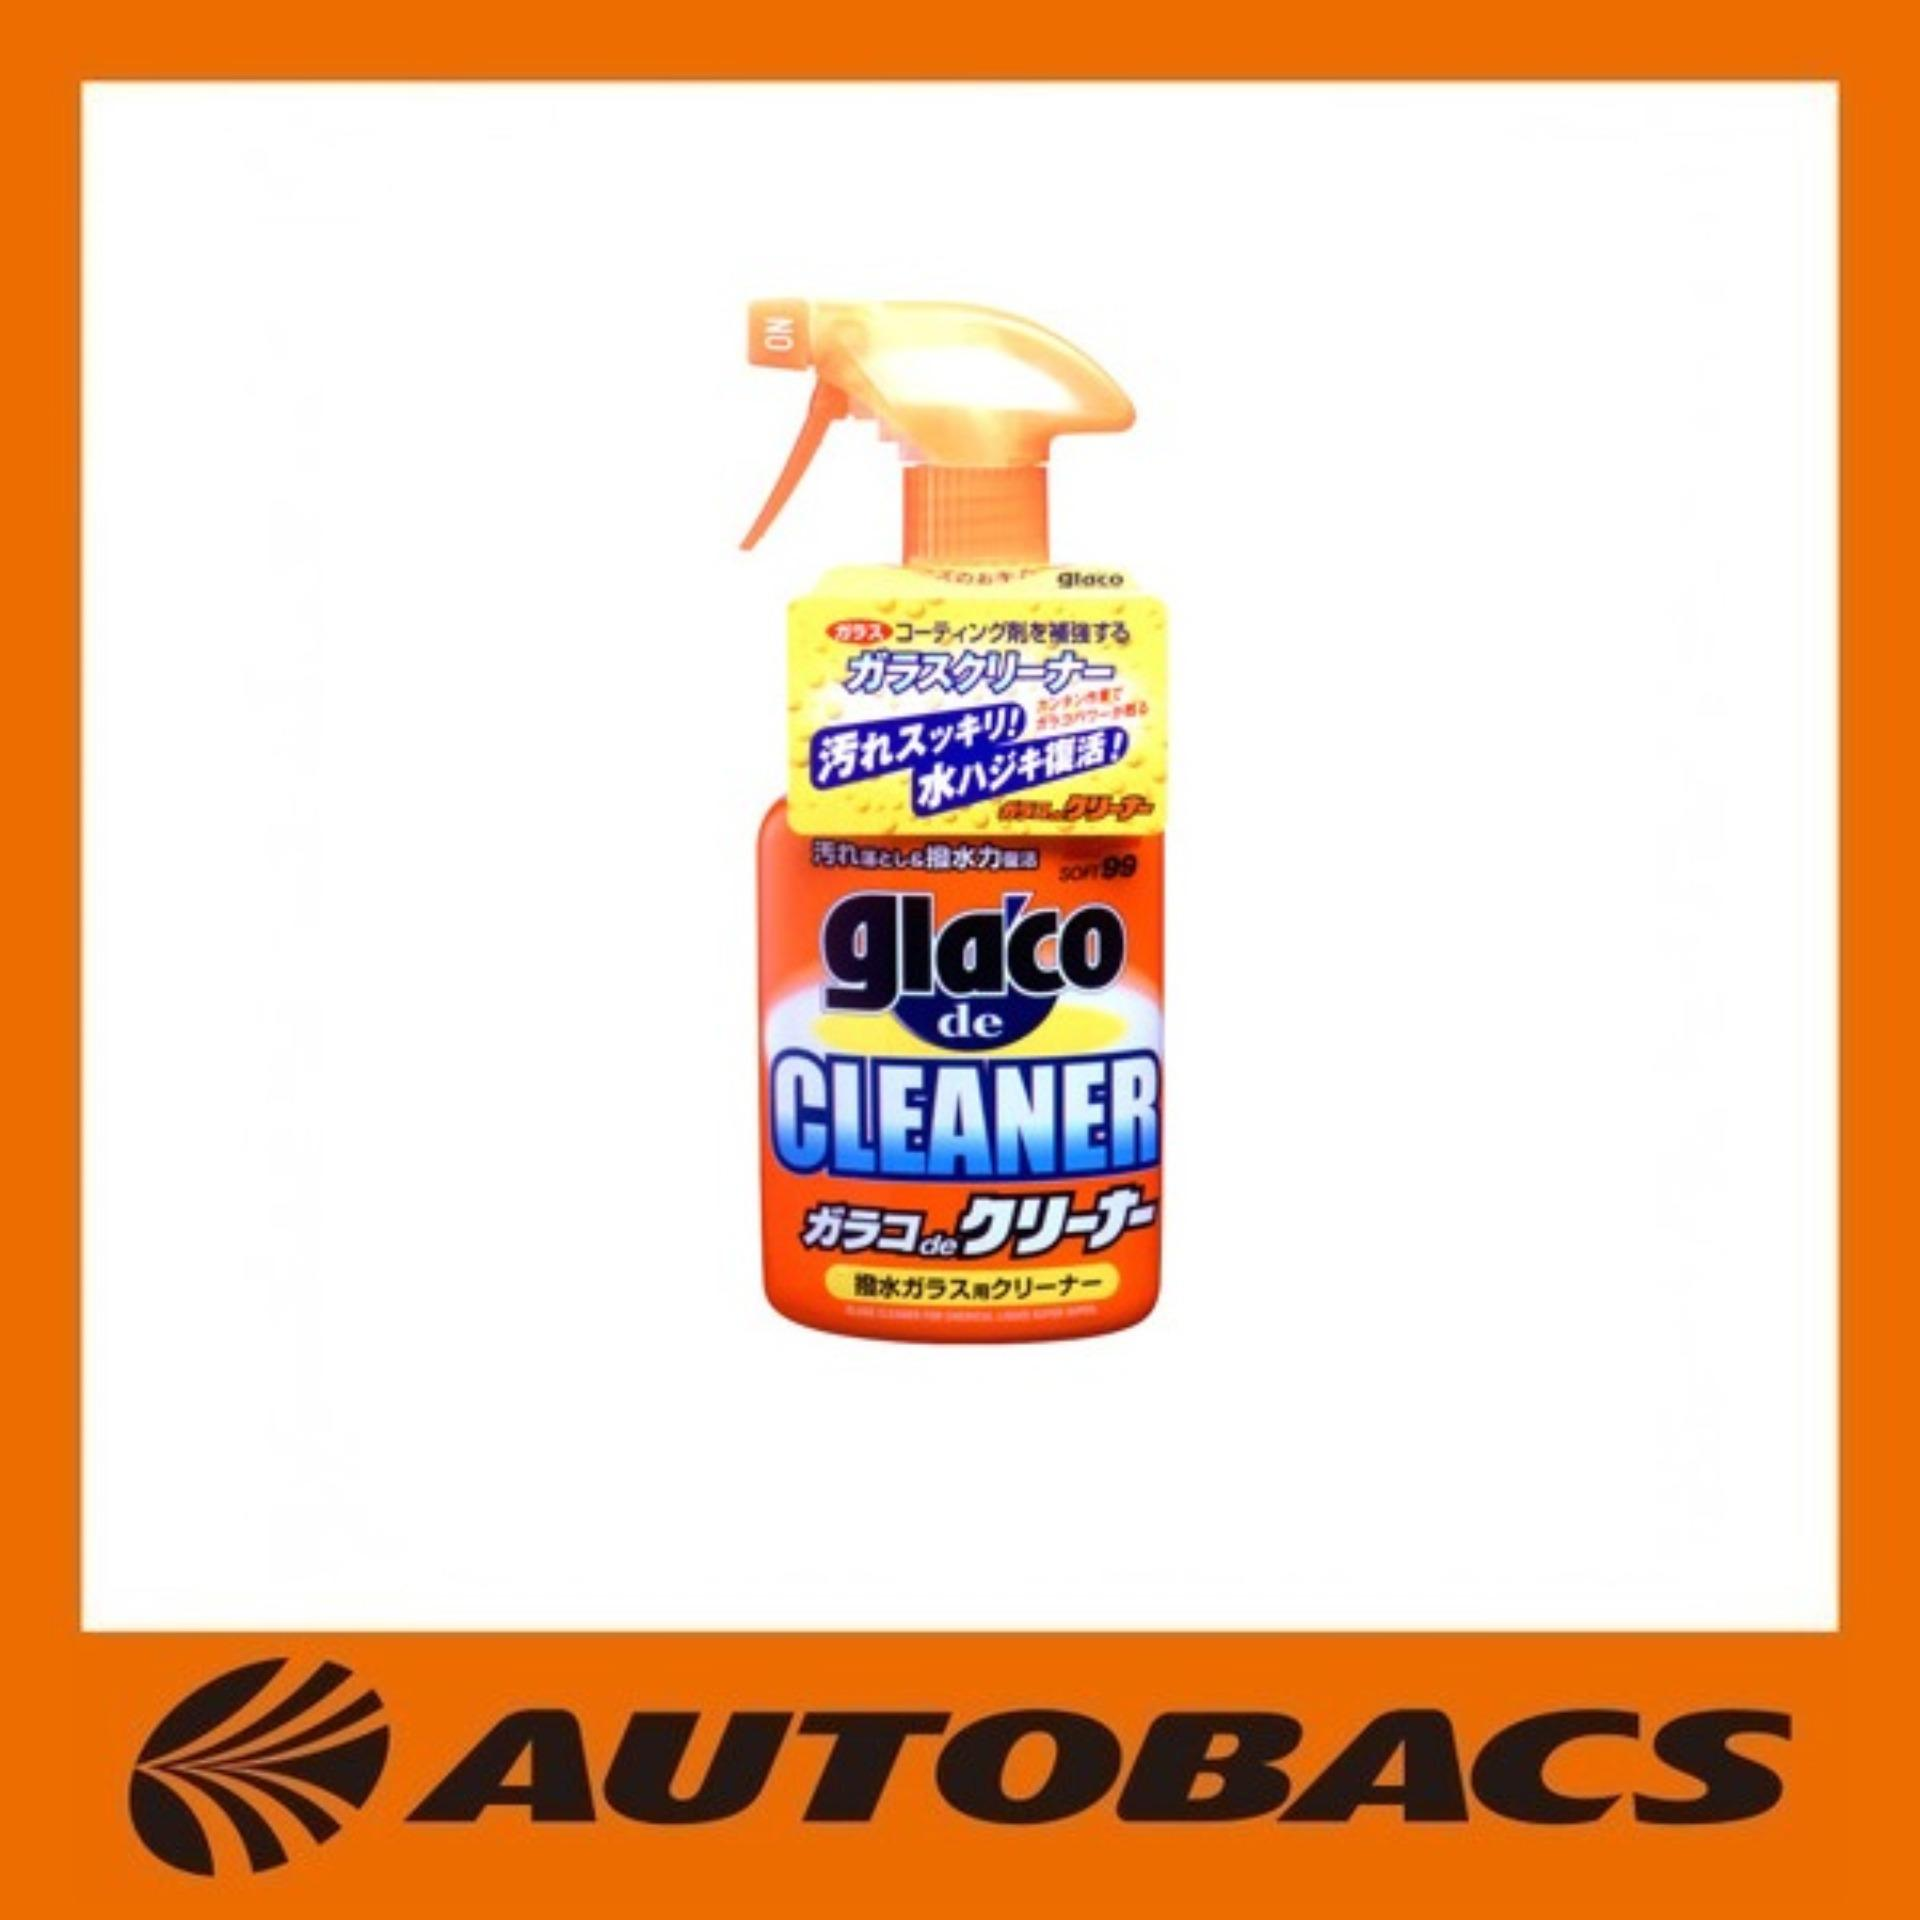 Latest Soft 99 Glaco De Cleaner